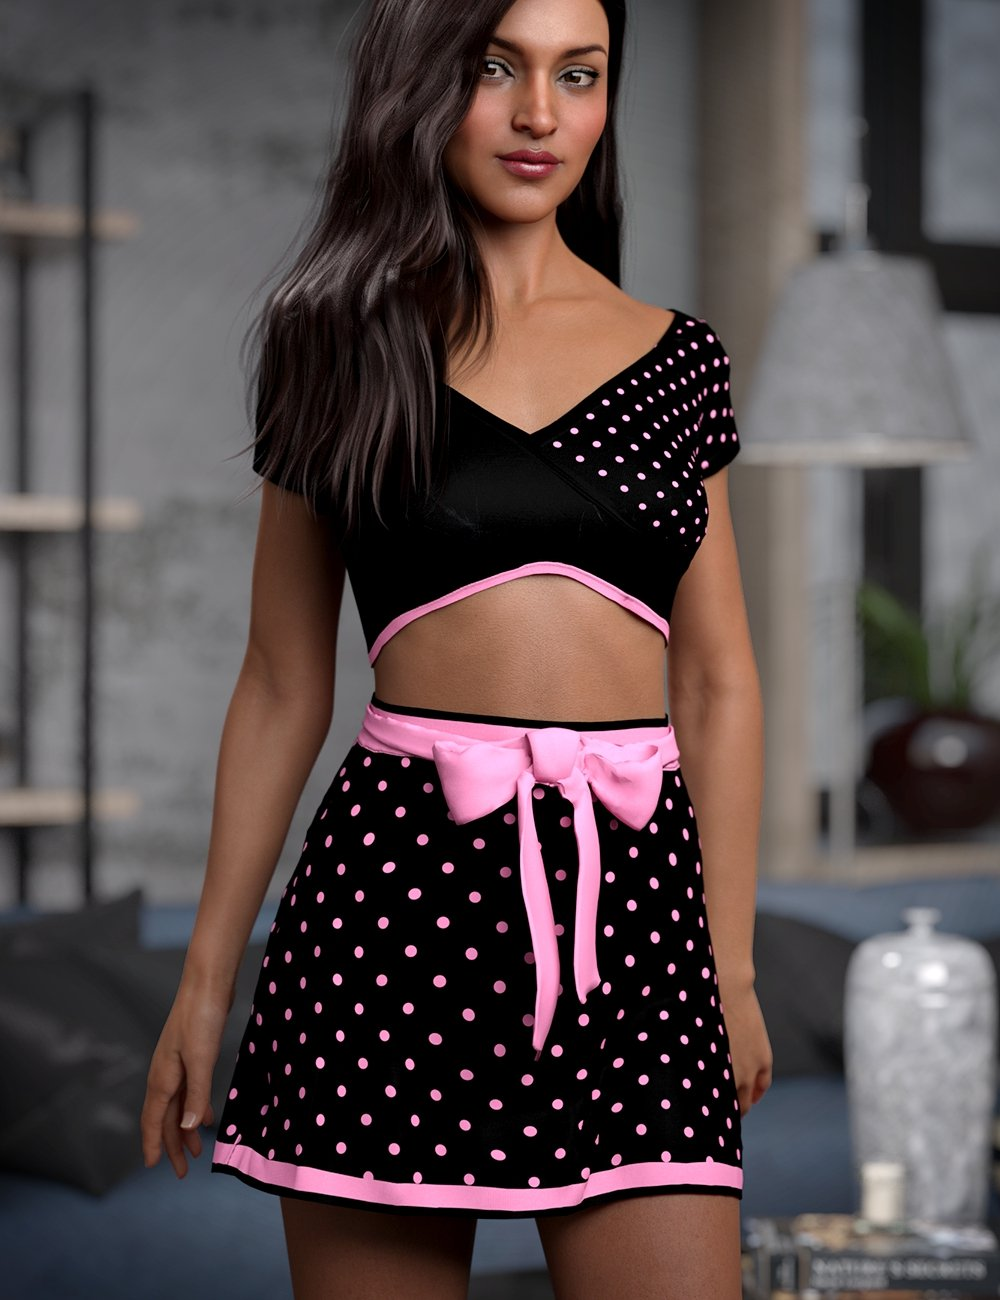 dForce Exes and Bows Outfit for Genesis 8 Female(s) by: Lyoness, 3D Models by Daz 3D